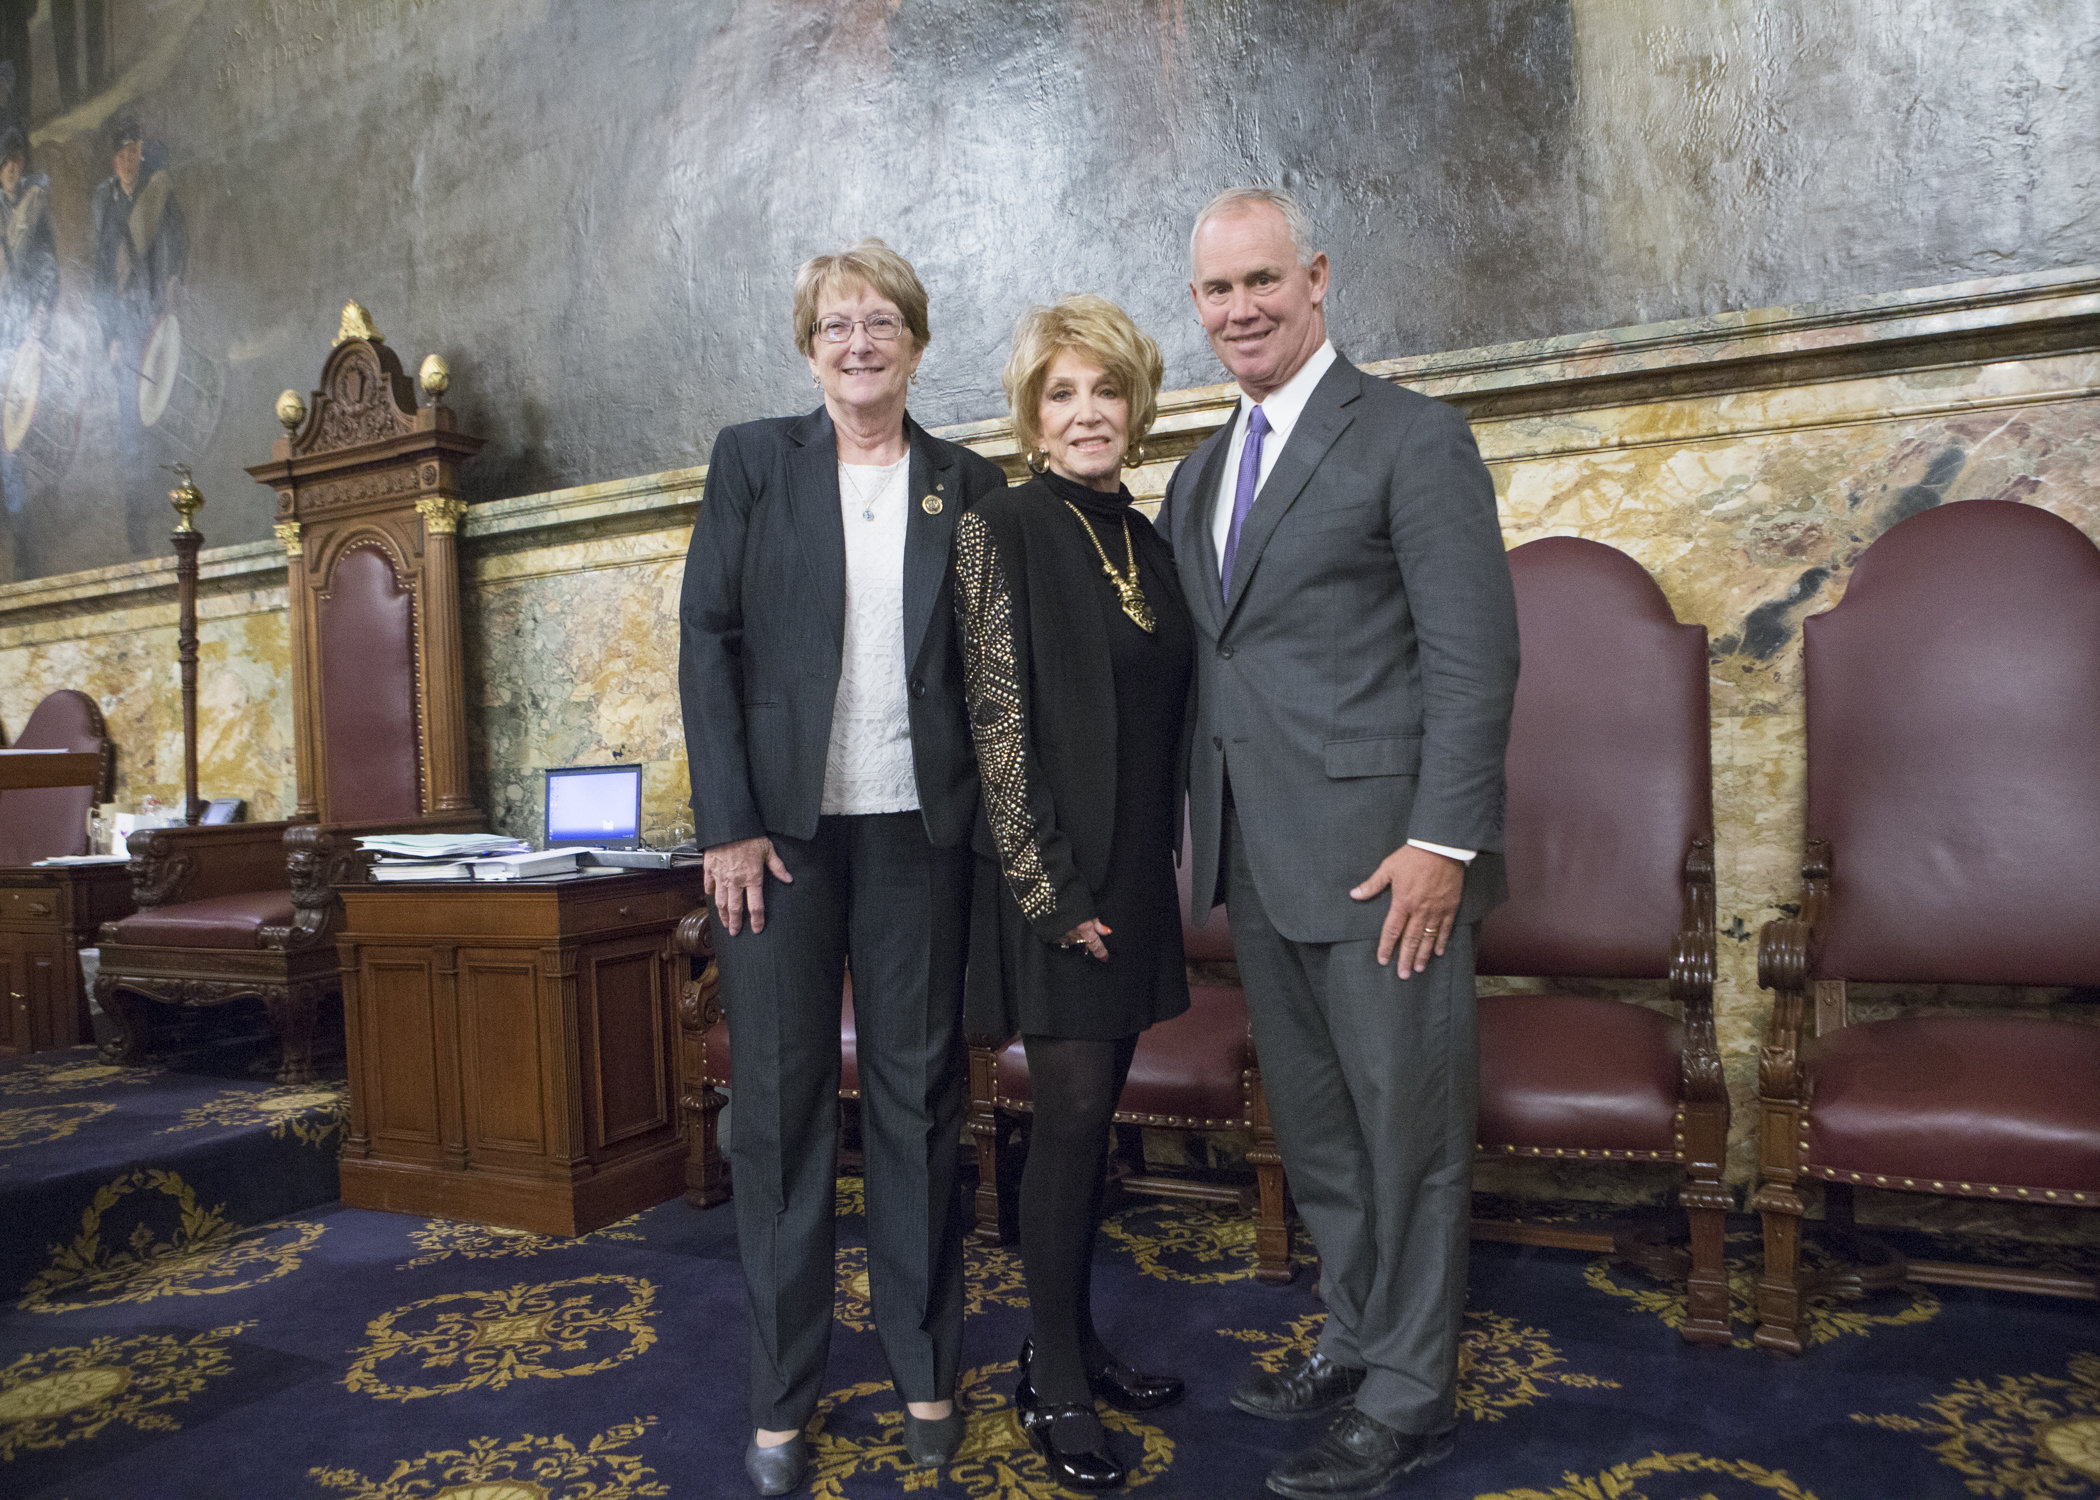 Rep. Kathy Rapp, Jeannie Seely and Mike Turzai Speaker of the House